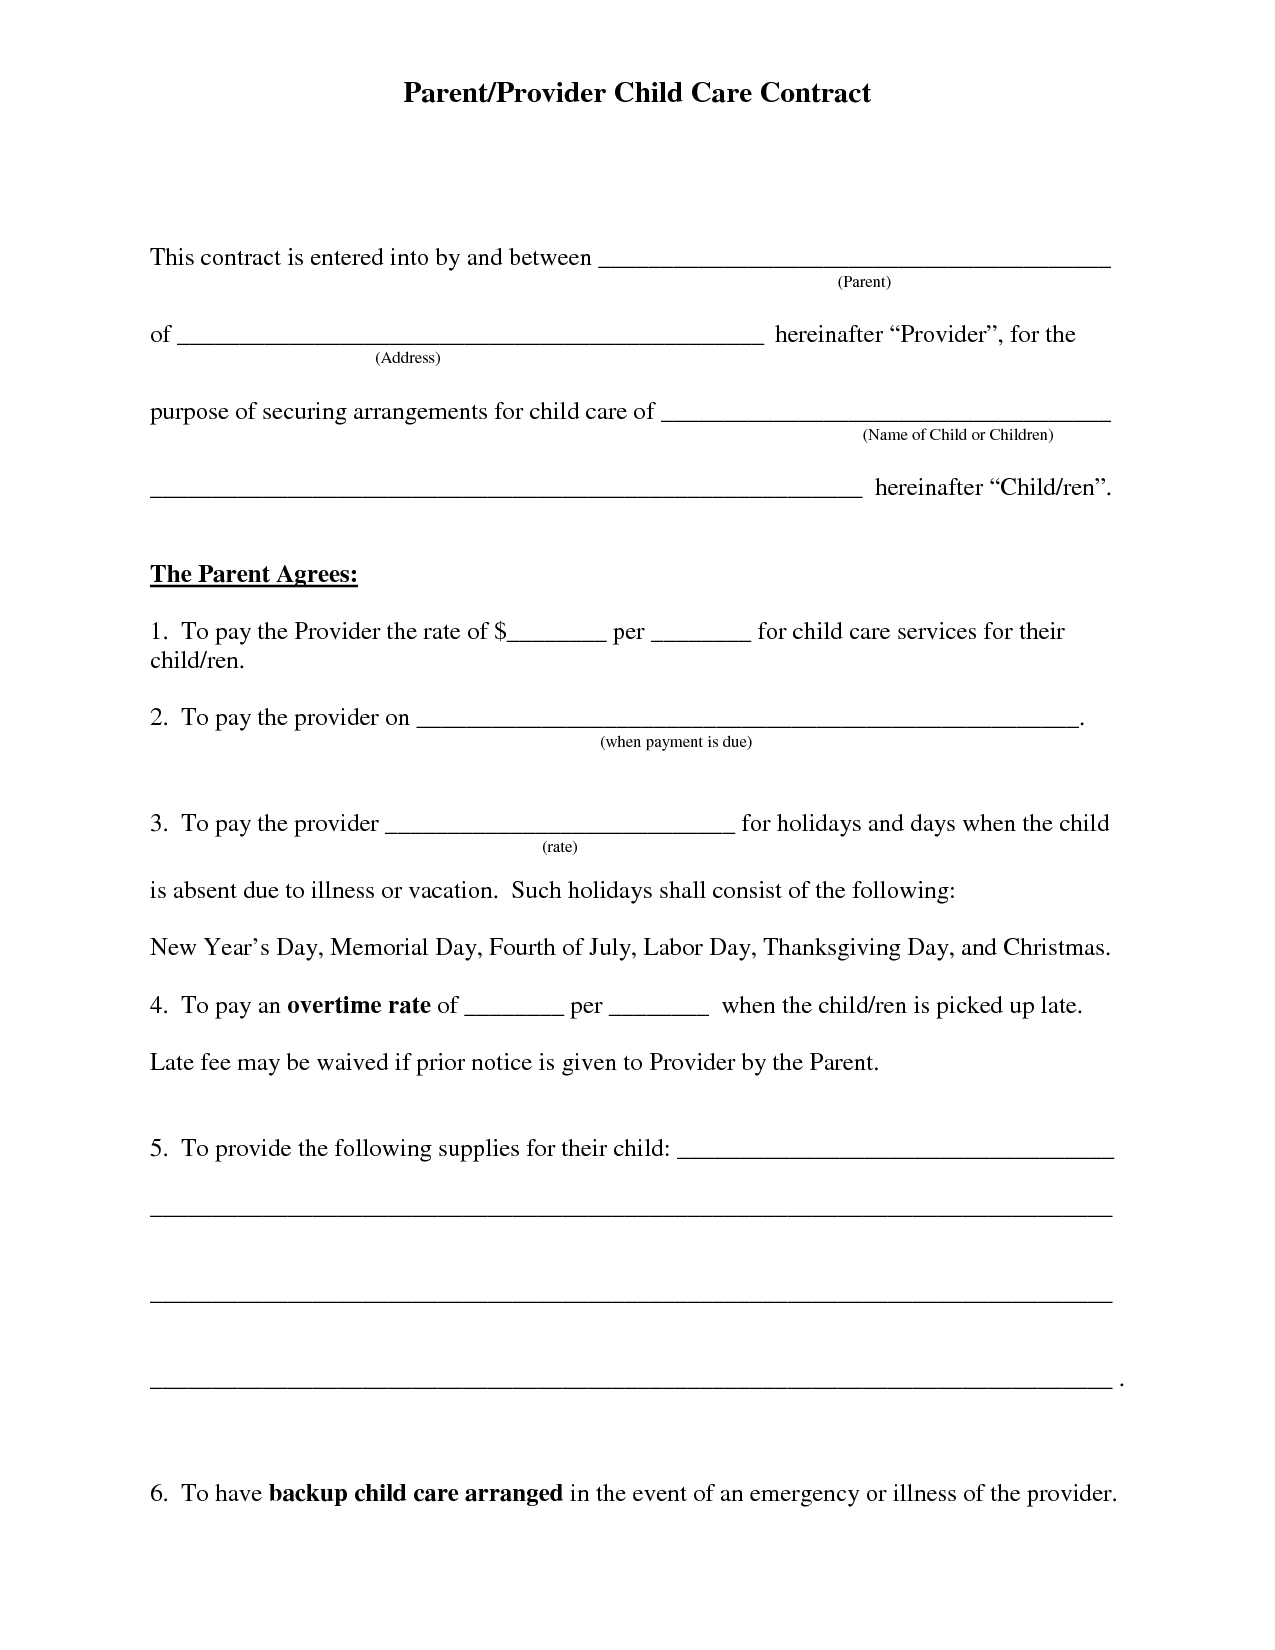 Free+Daycare+Contract+Forms | Printable Daycare Forms | Pinterest - Free Printable Daycare Forms